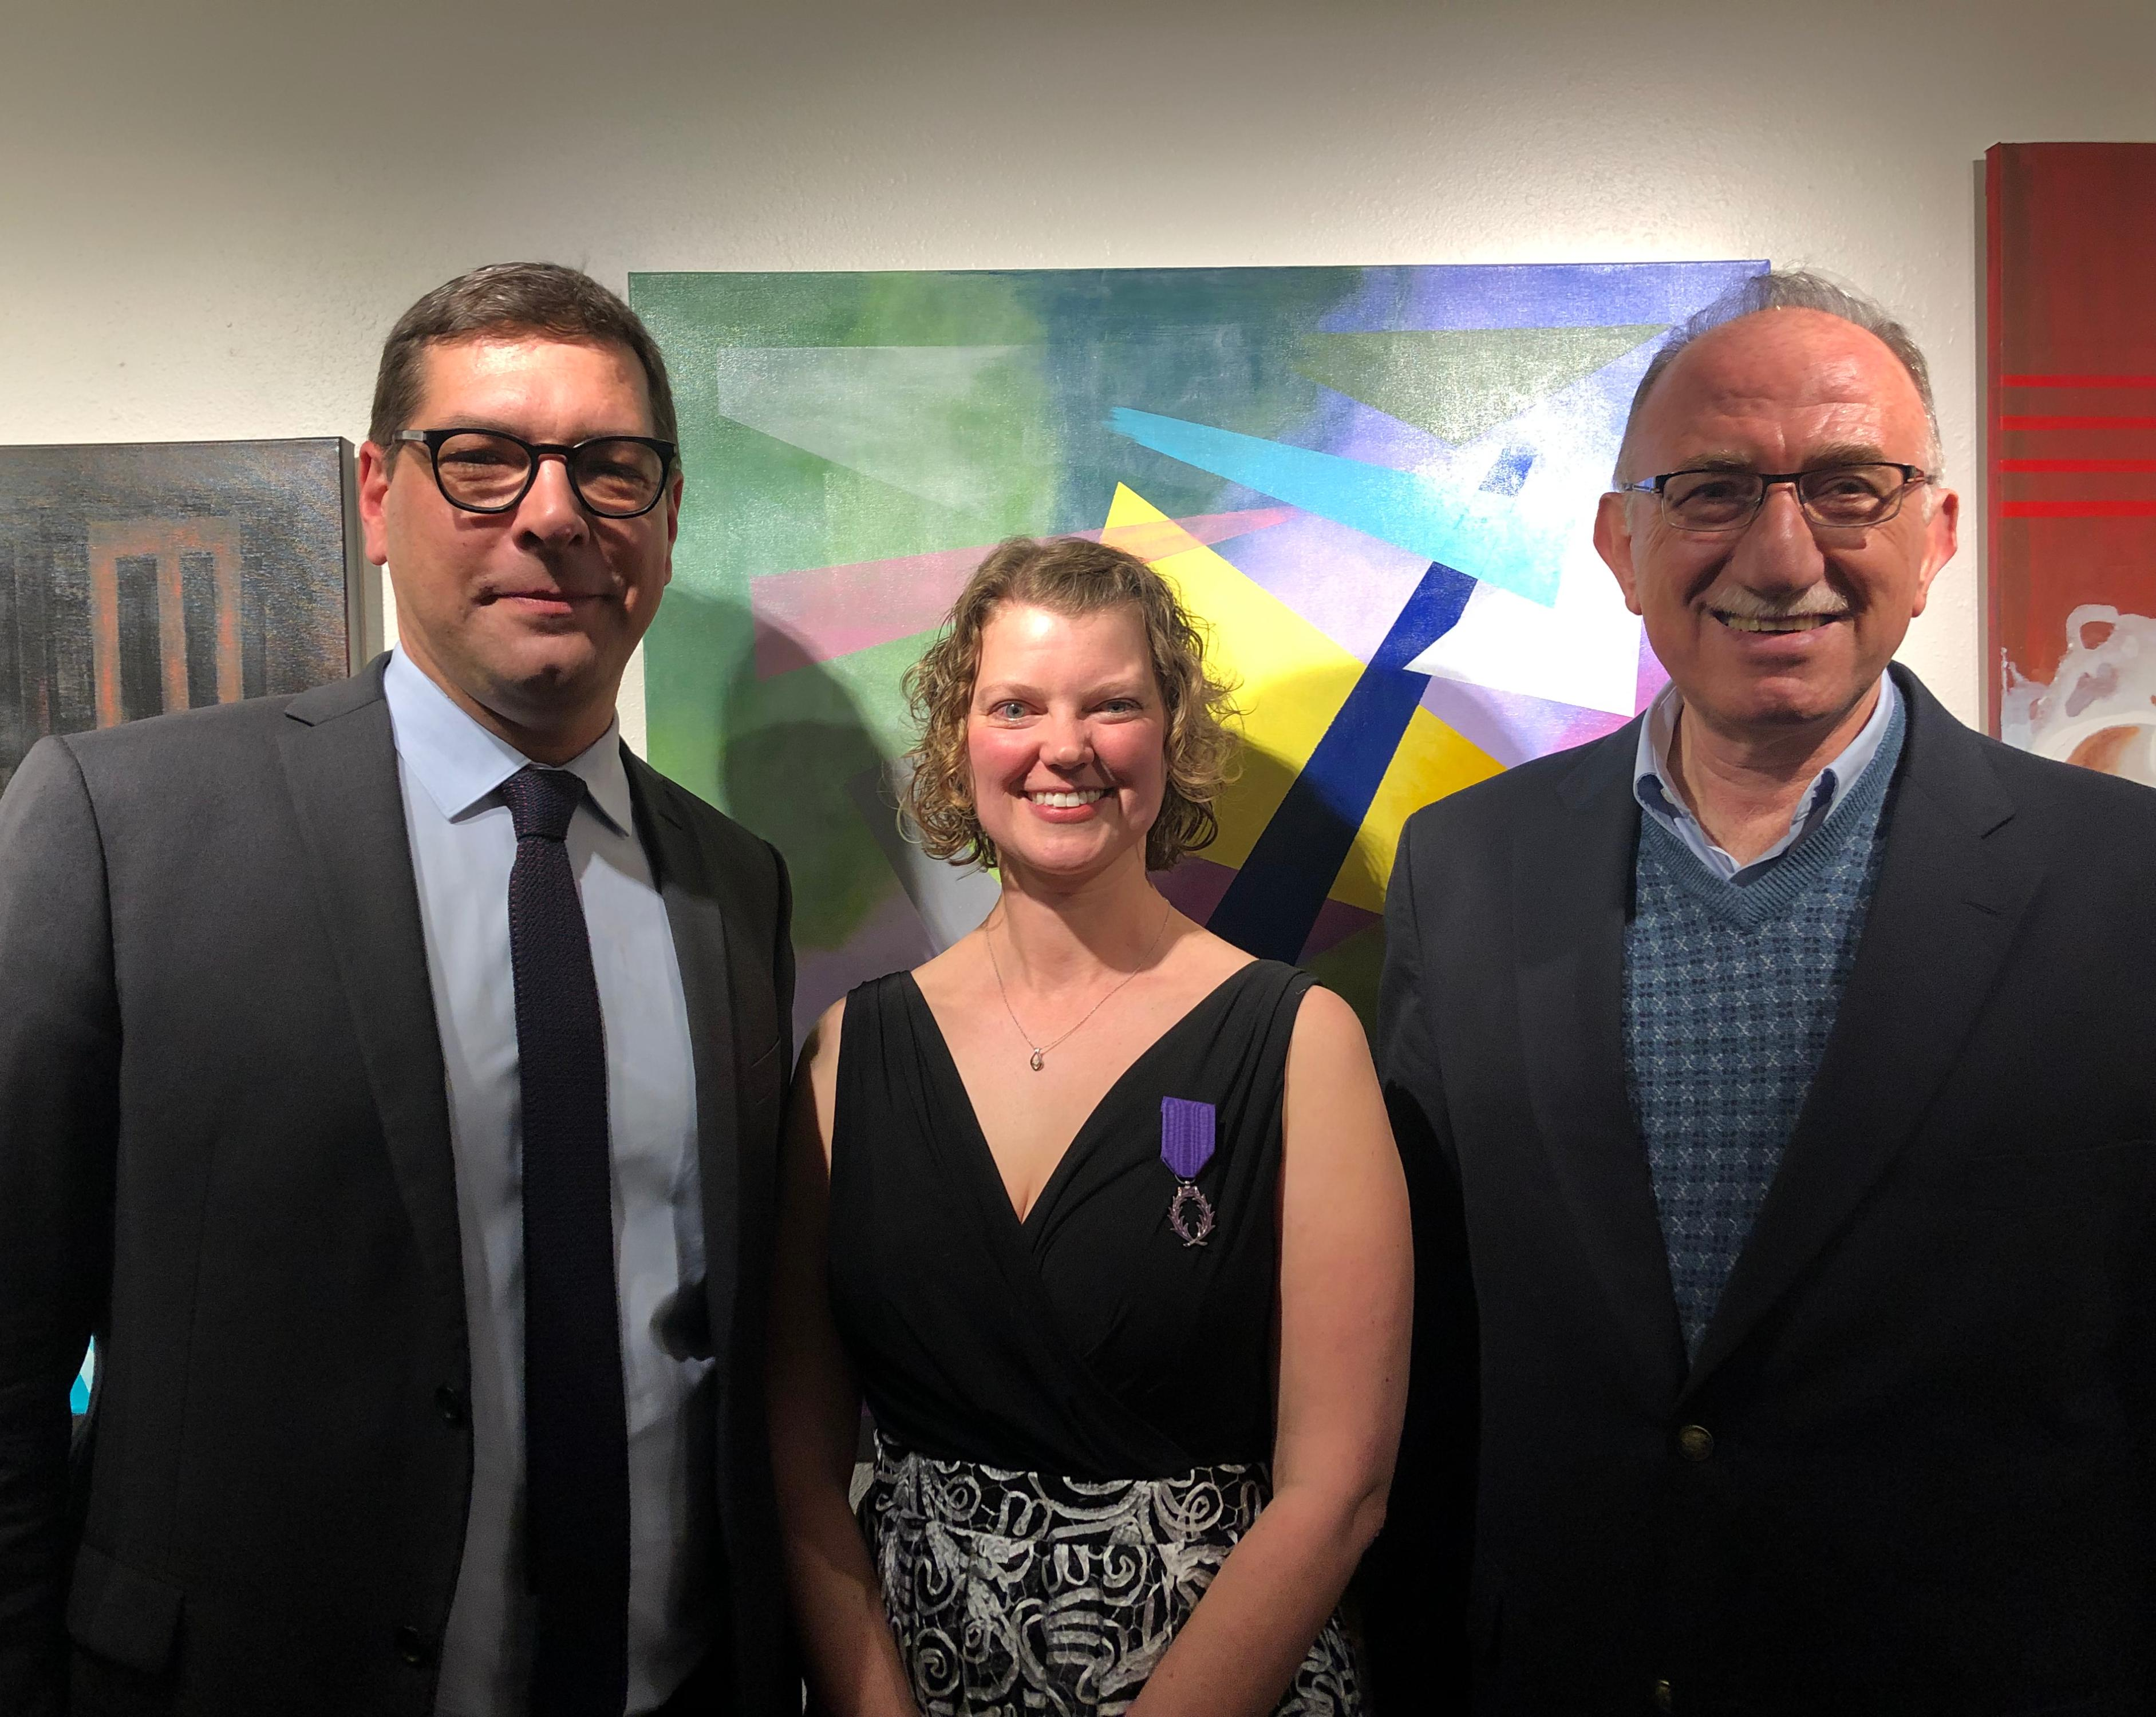 Megan Diercks, center, with the French Consul General and HASS Director Hussein Amery